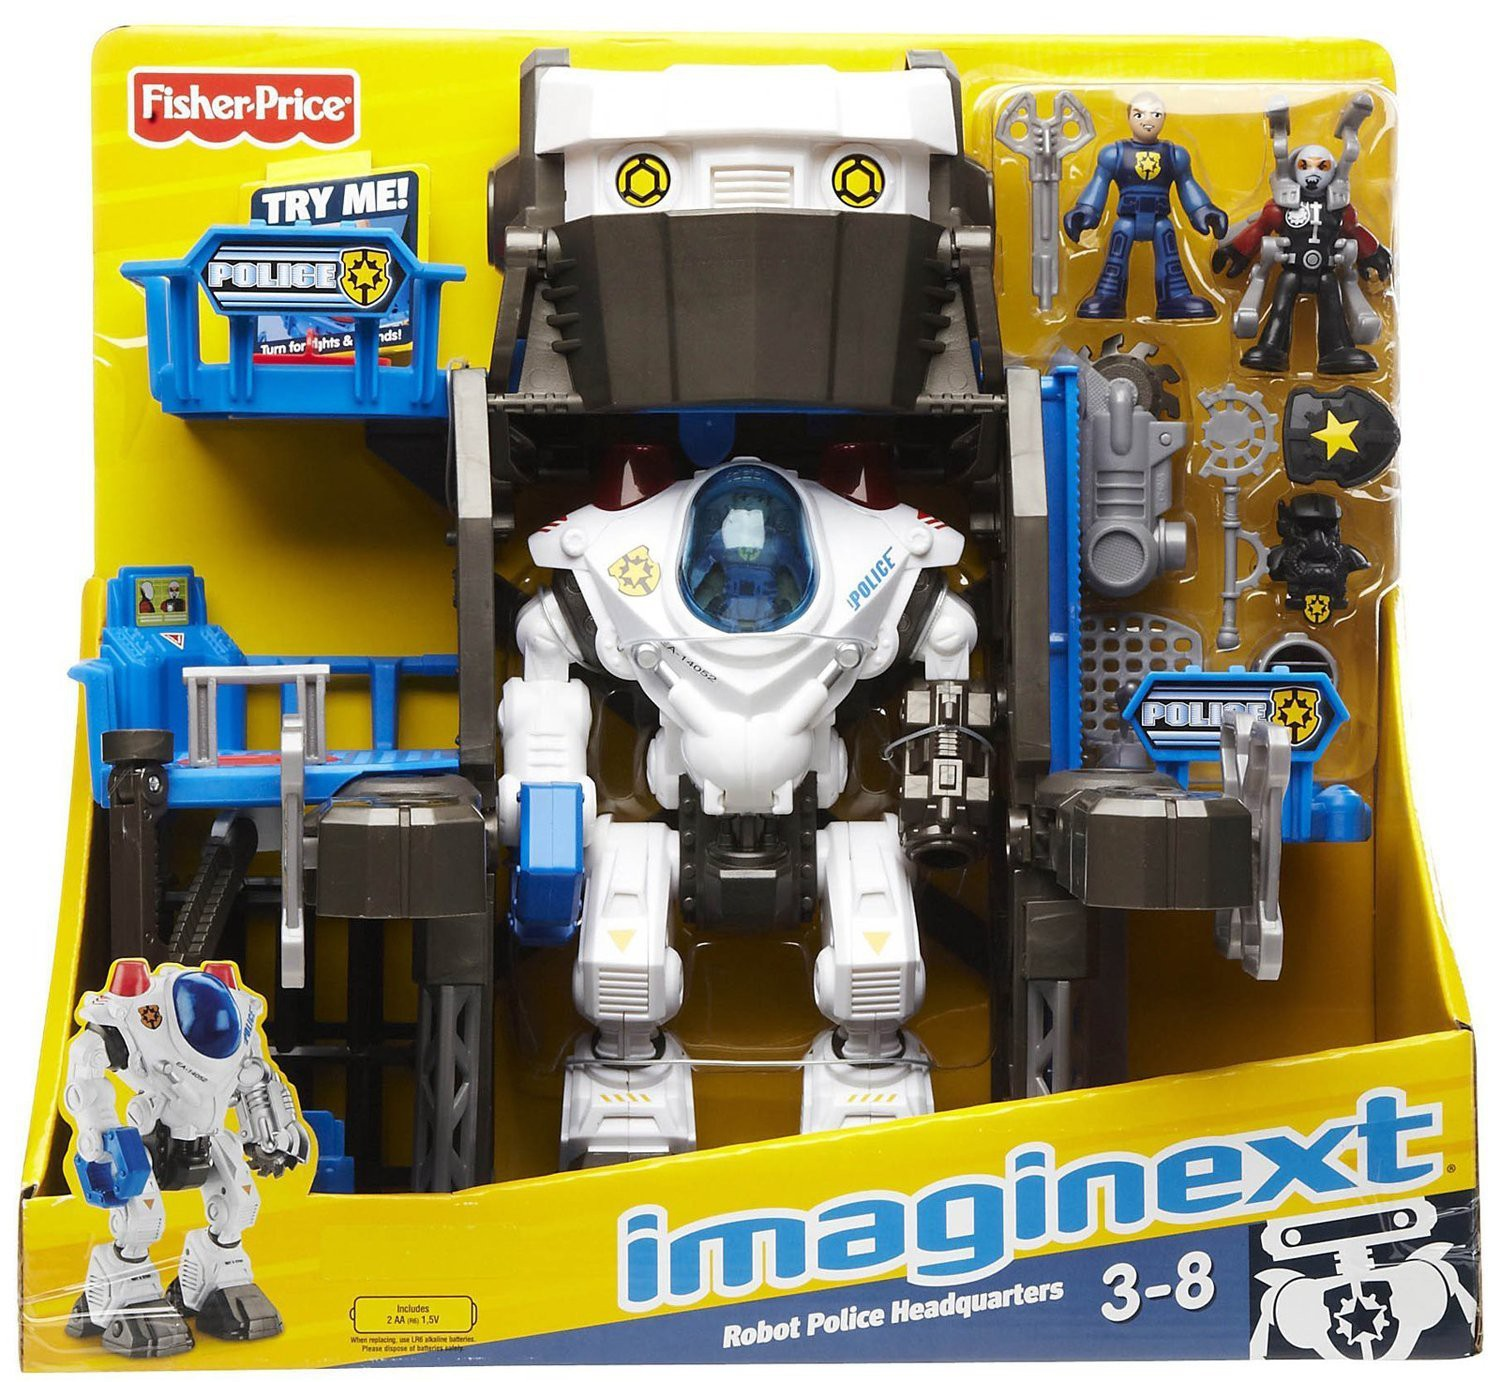 Fisher Price Imaginext Robot Police Headquarters Playset